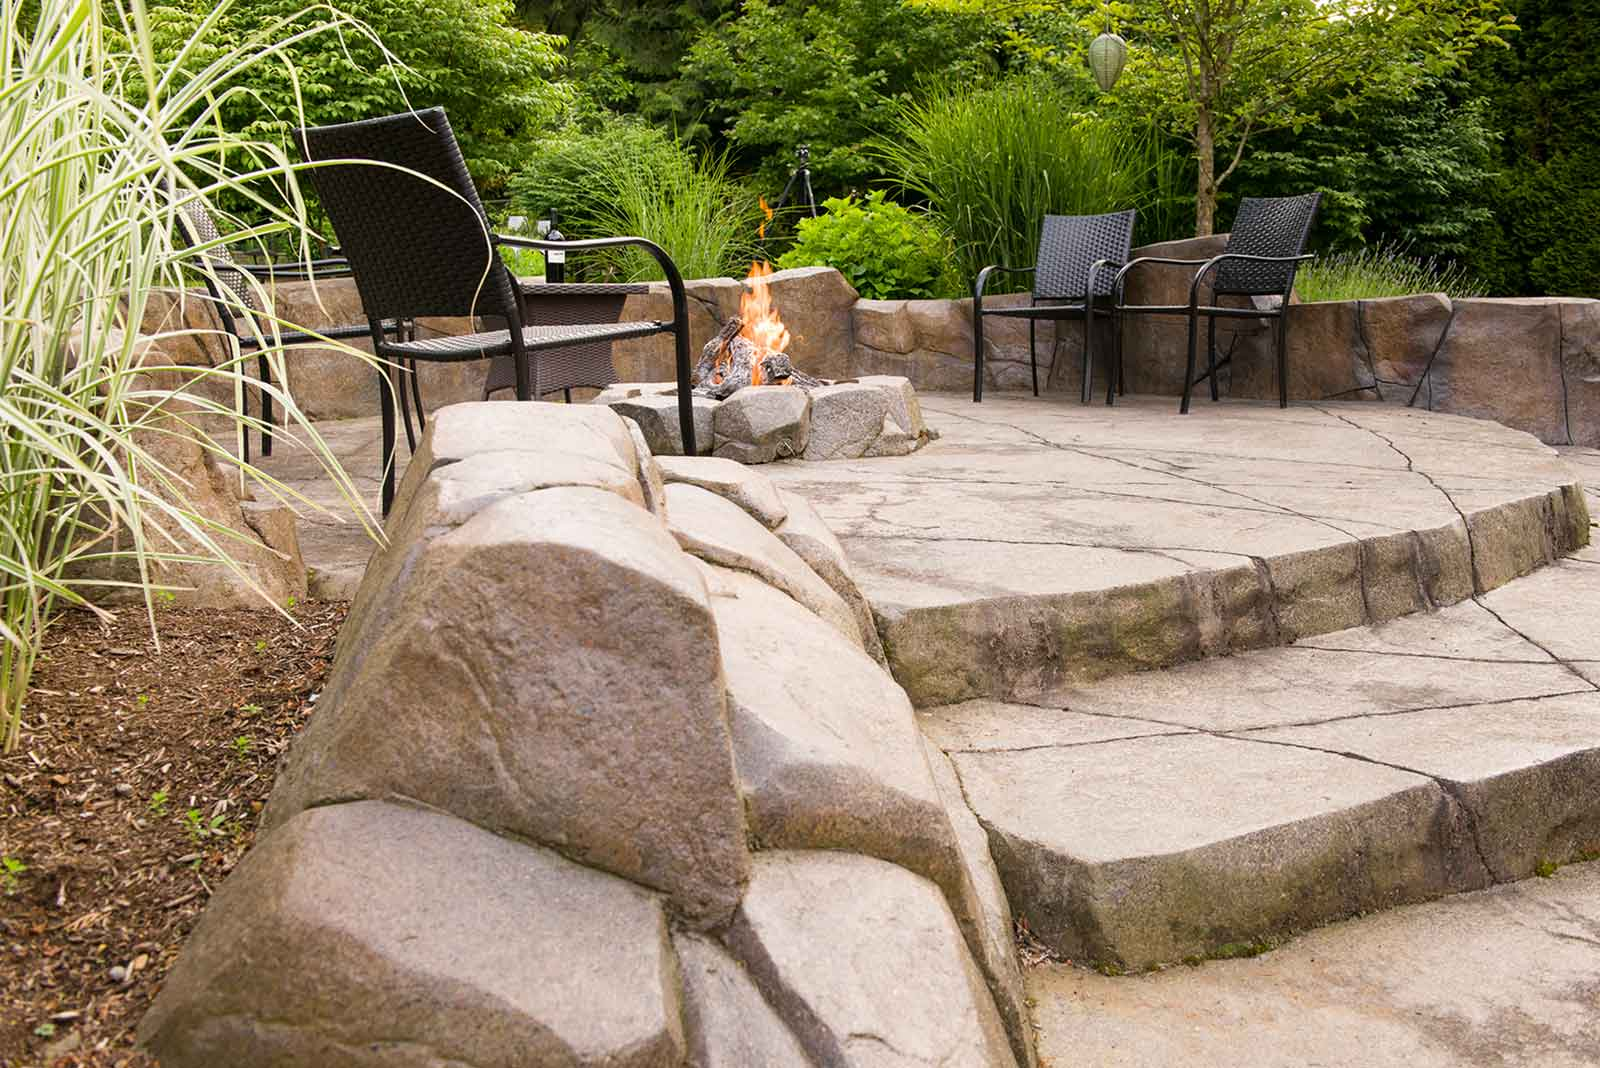 Secluded backyard with concrete rock work